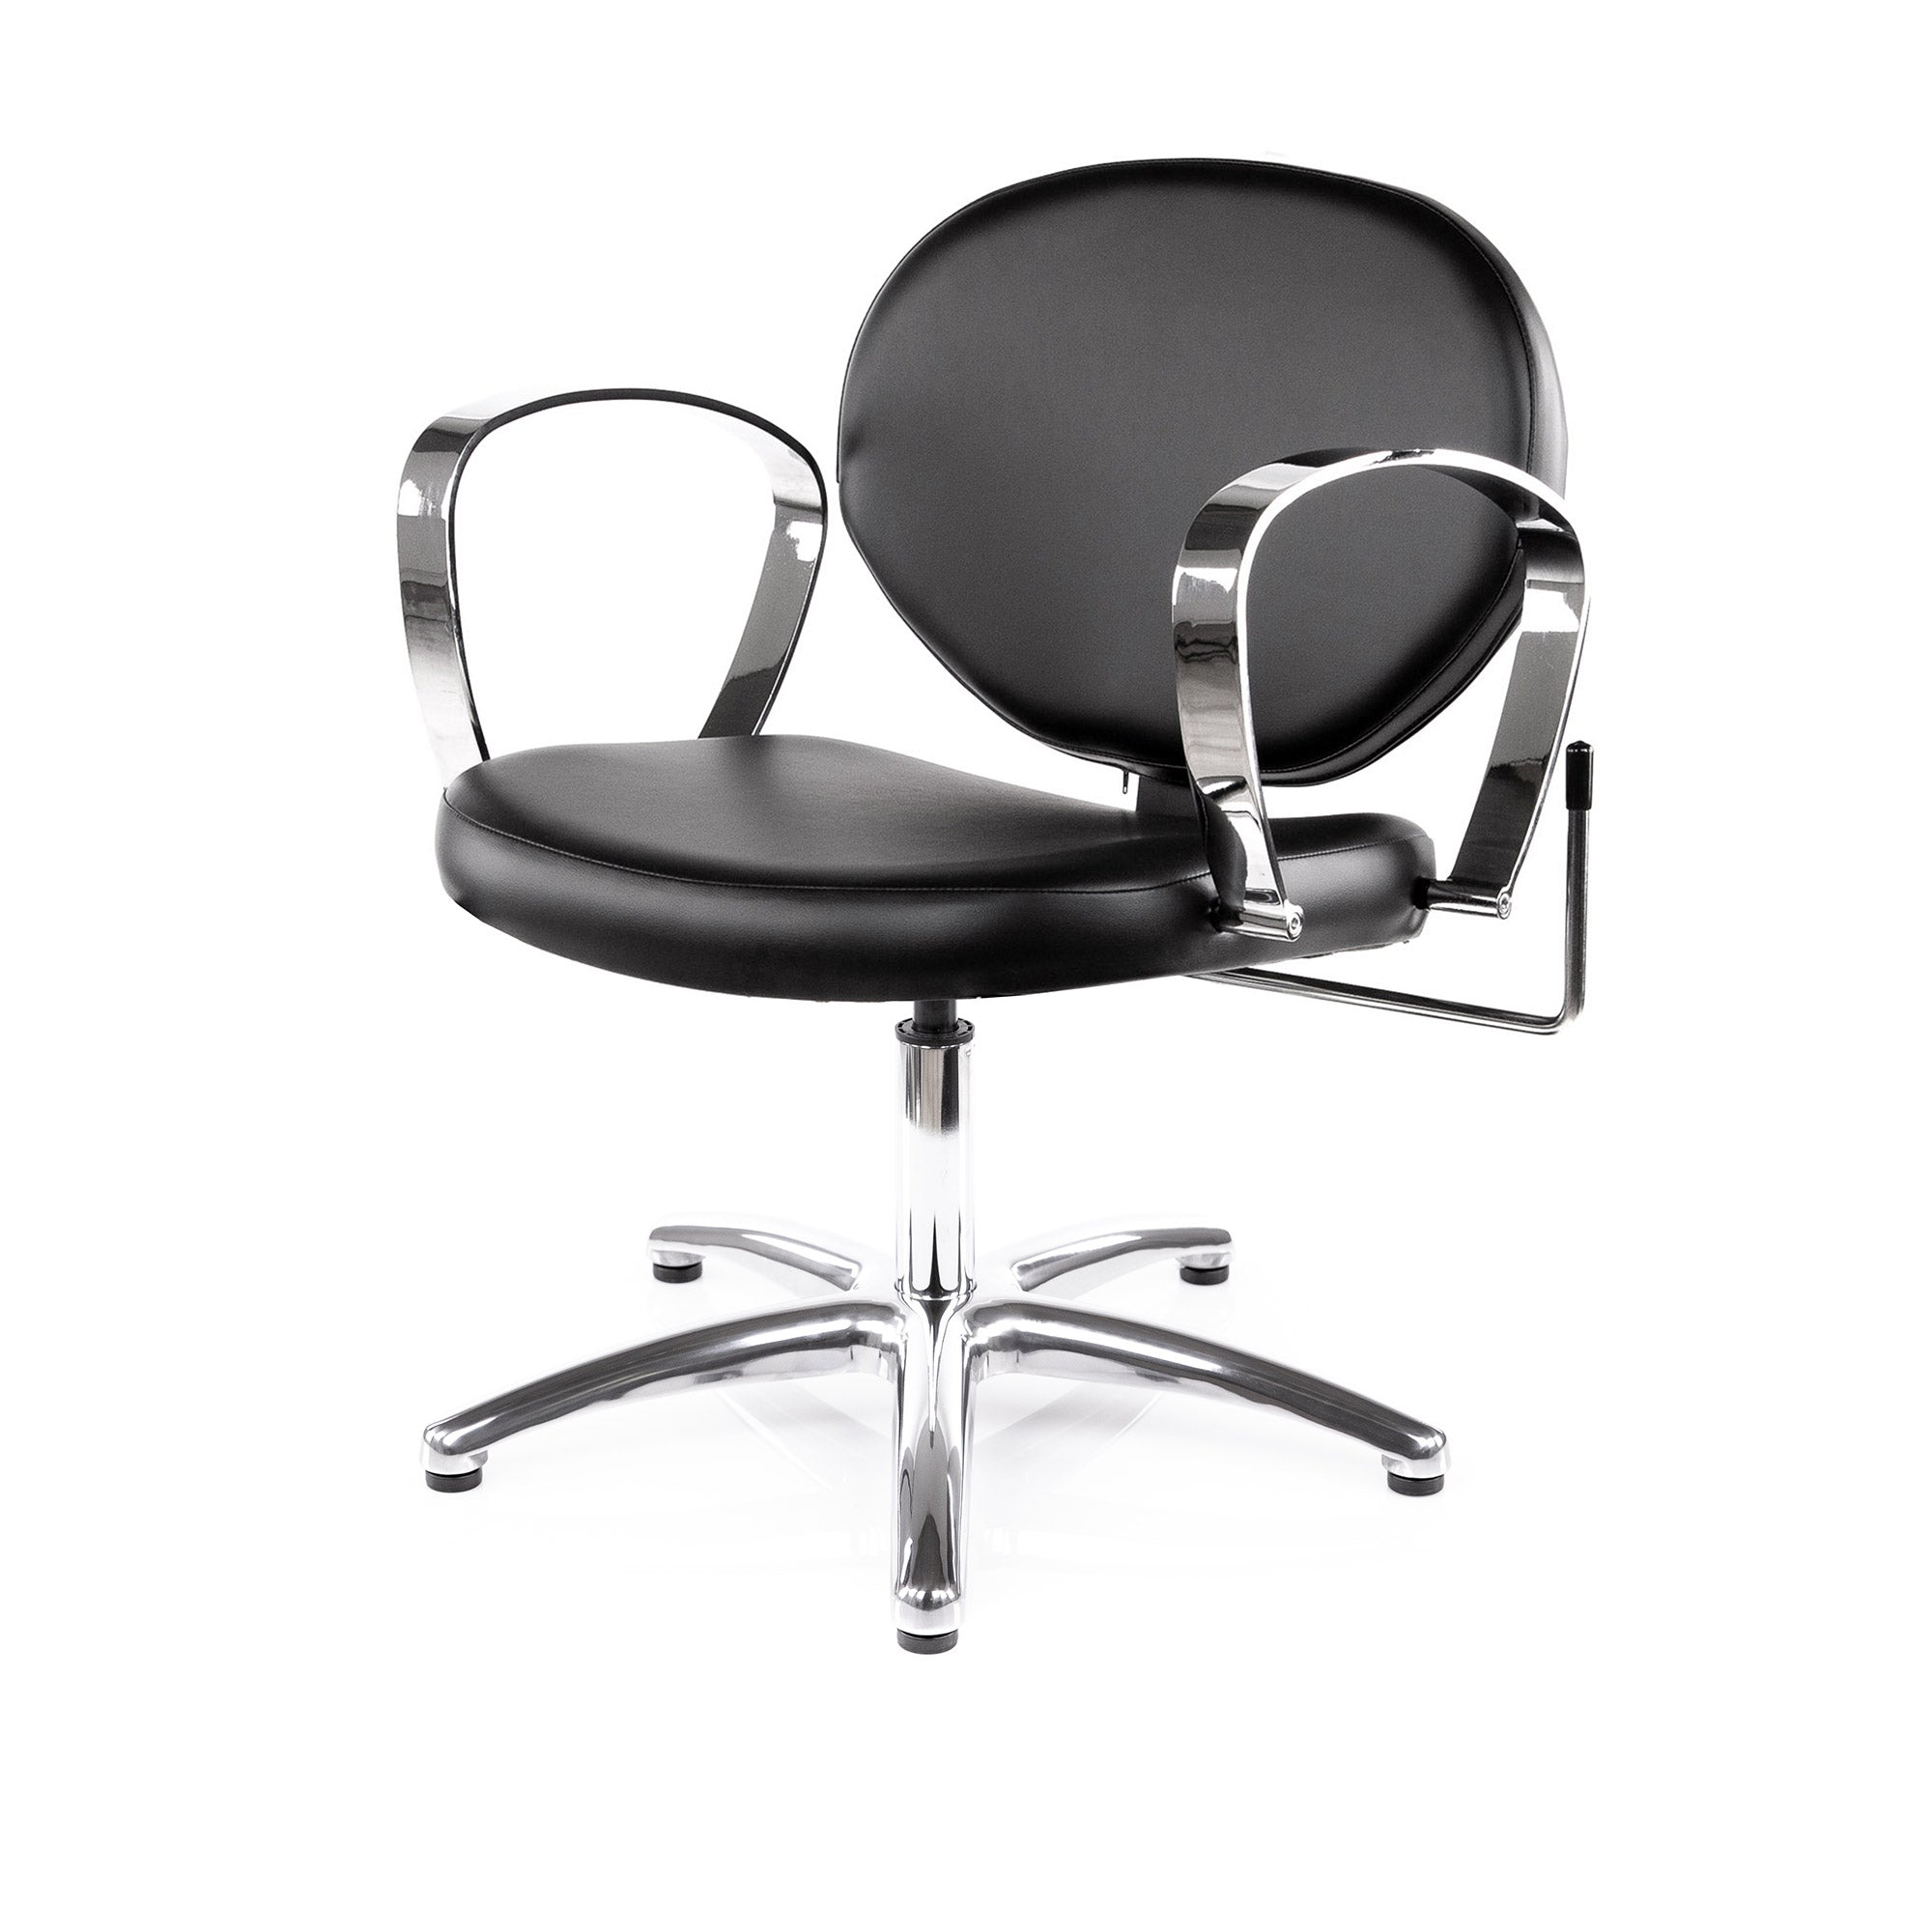 Darcy-edu L-Control Shampoo Chair - Collins